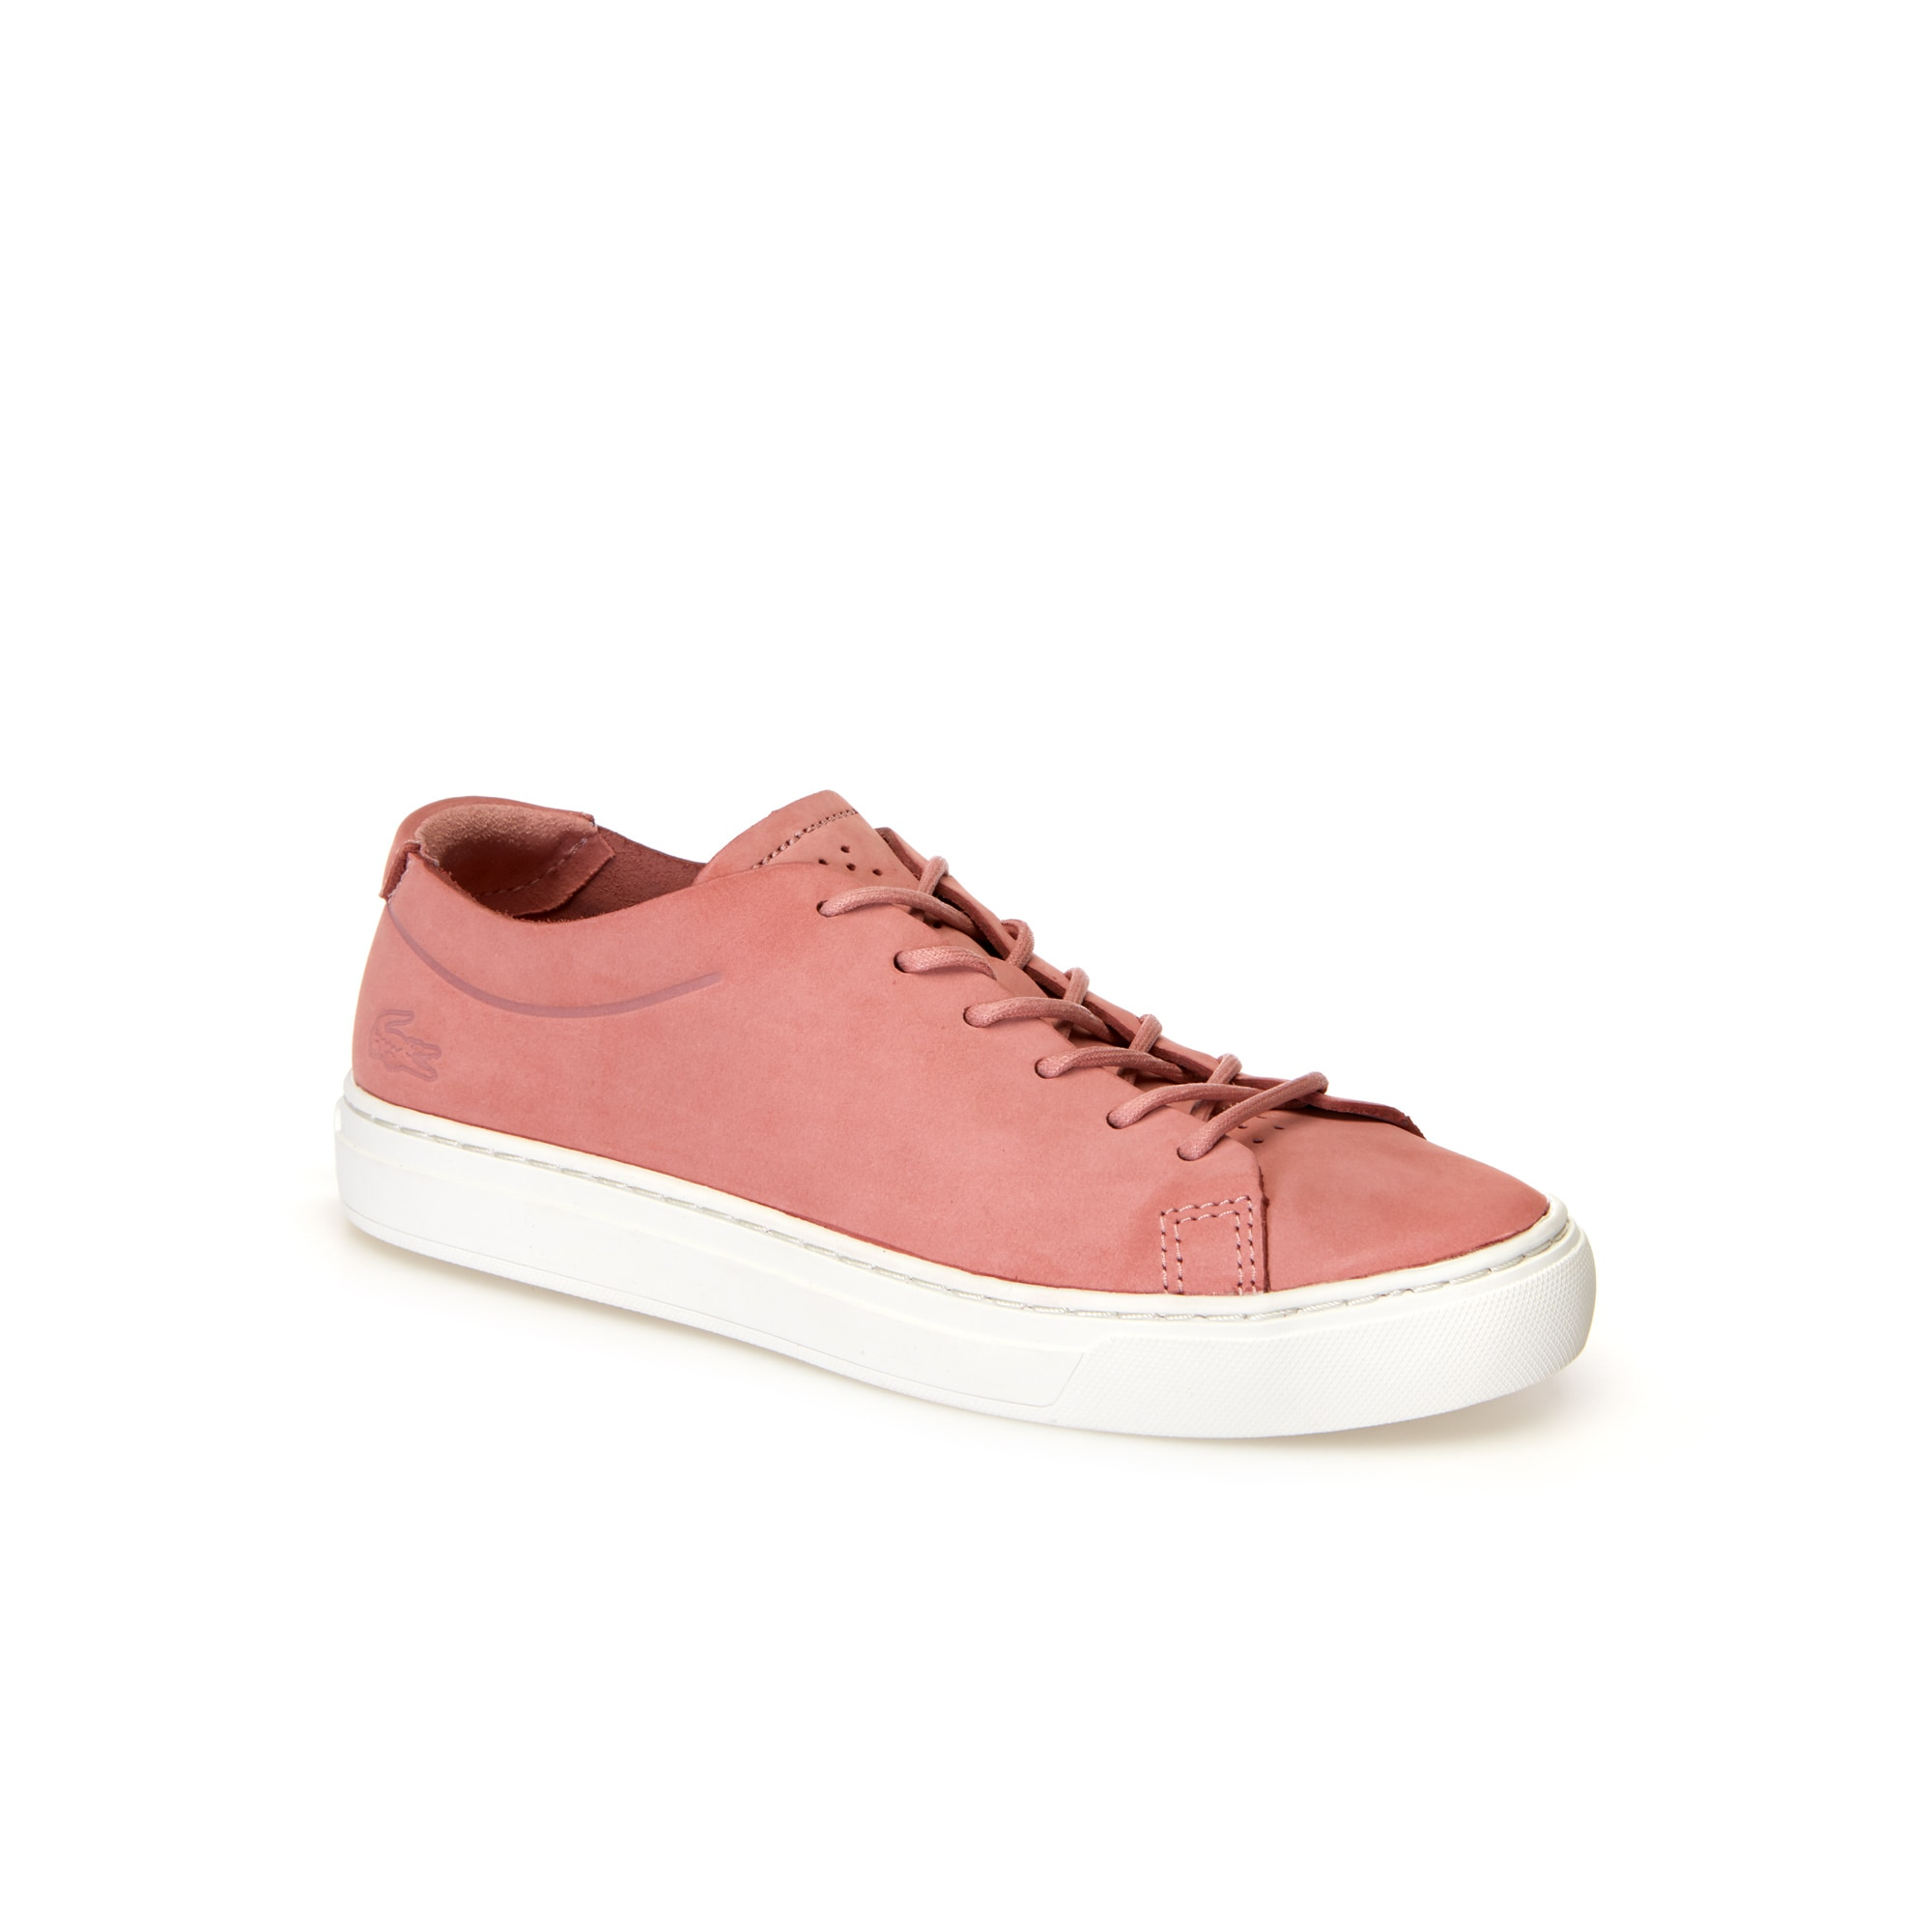 Damen-Sneakers L.12.12 UNLINED aus Nubukleder